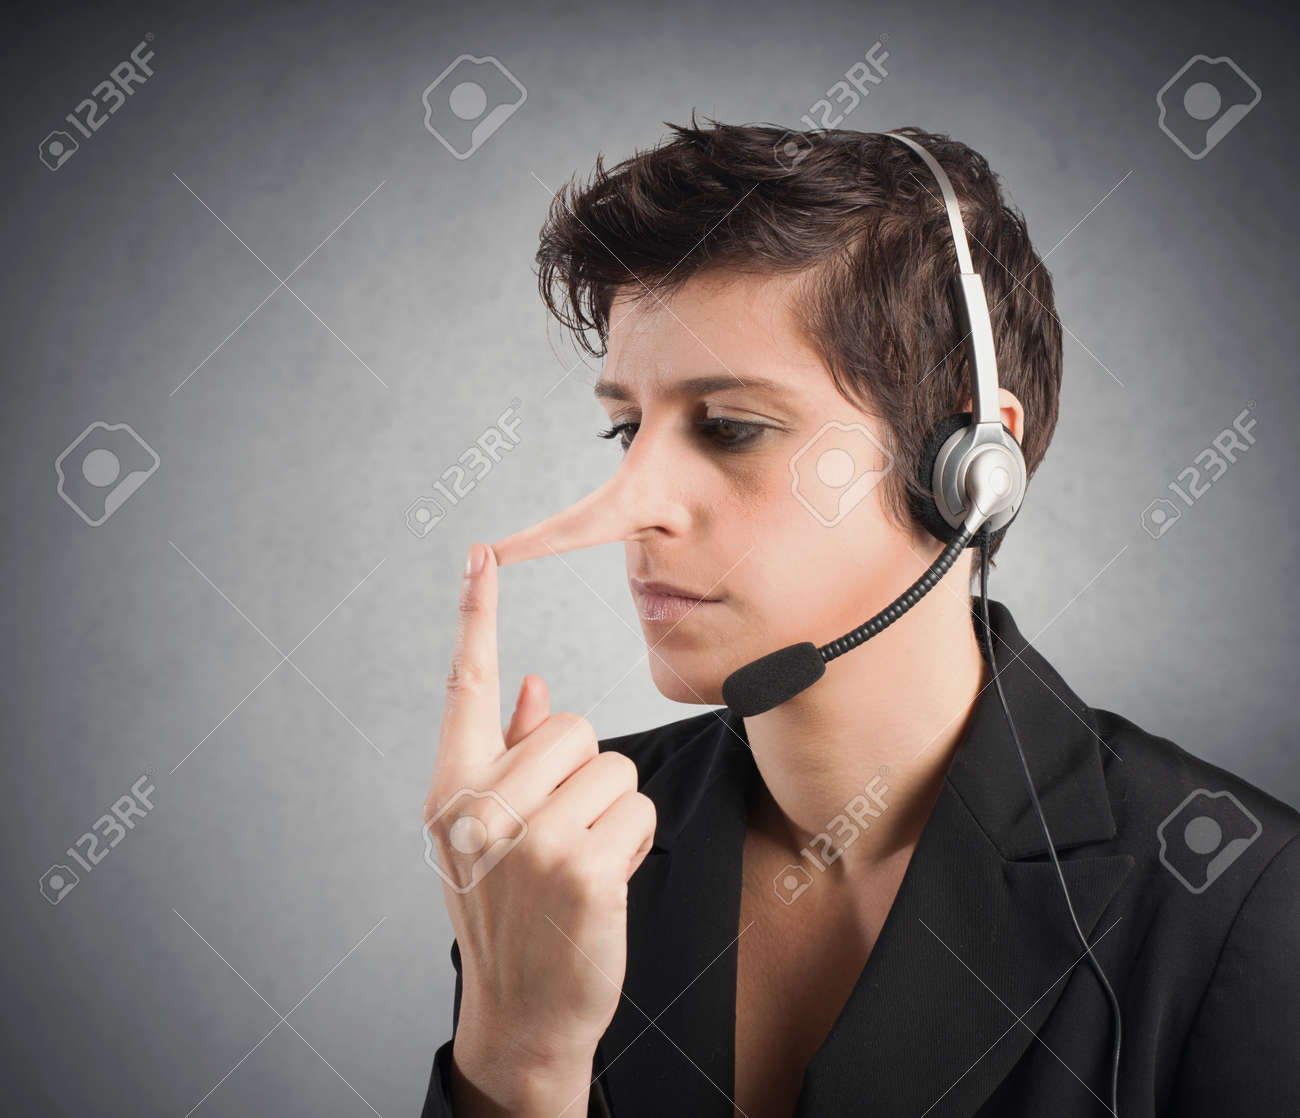 Concept of Customer Support liar with long nose Stock Photo - 24633368